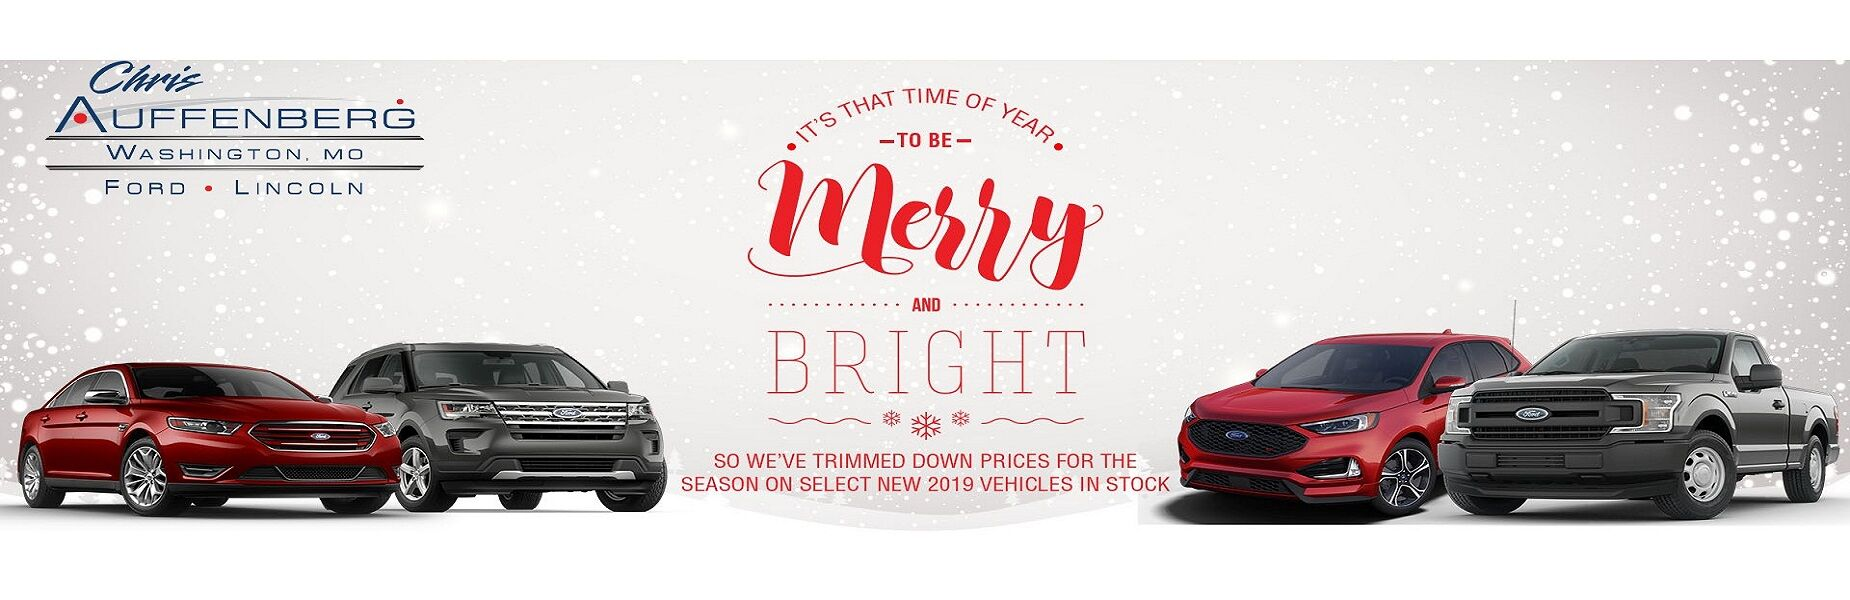 Chris Auffenberg Ford's Merry and Bright New 2019 Markdowns